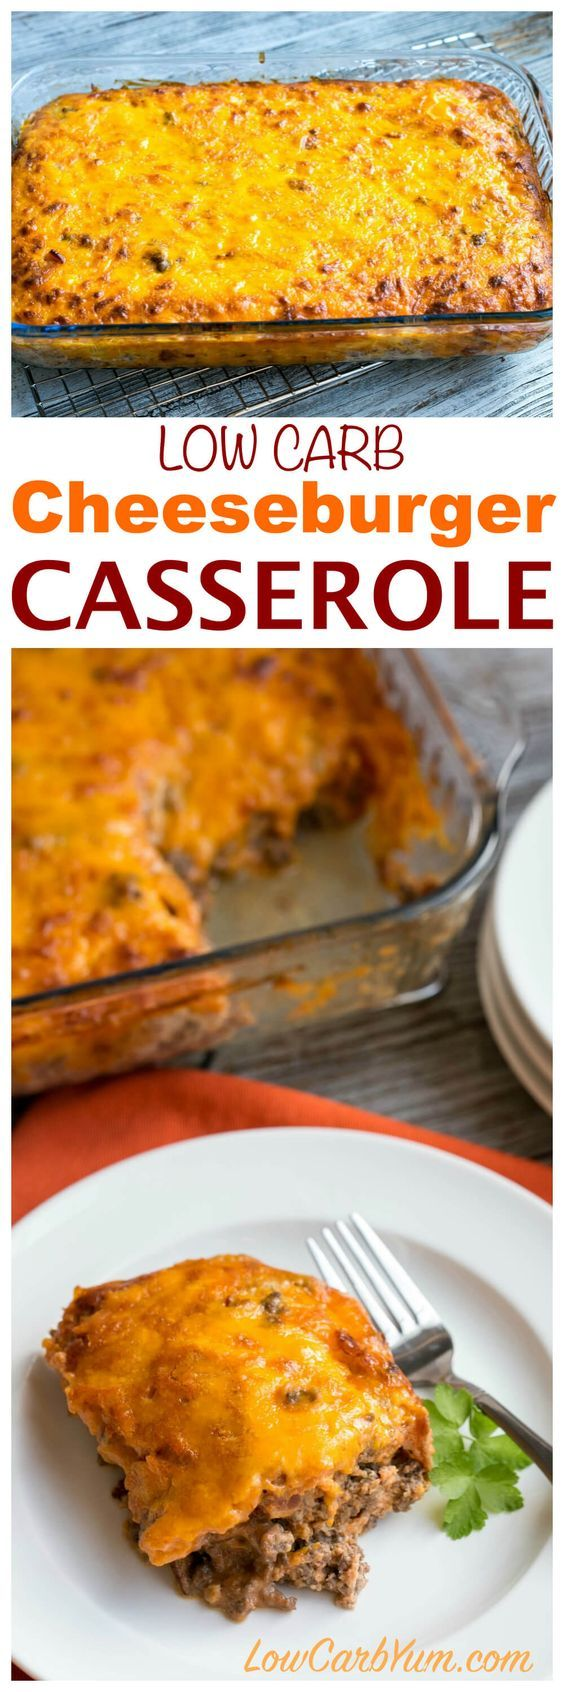 Low Carb Bacon Cheeseburger Casserole